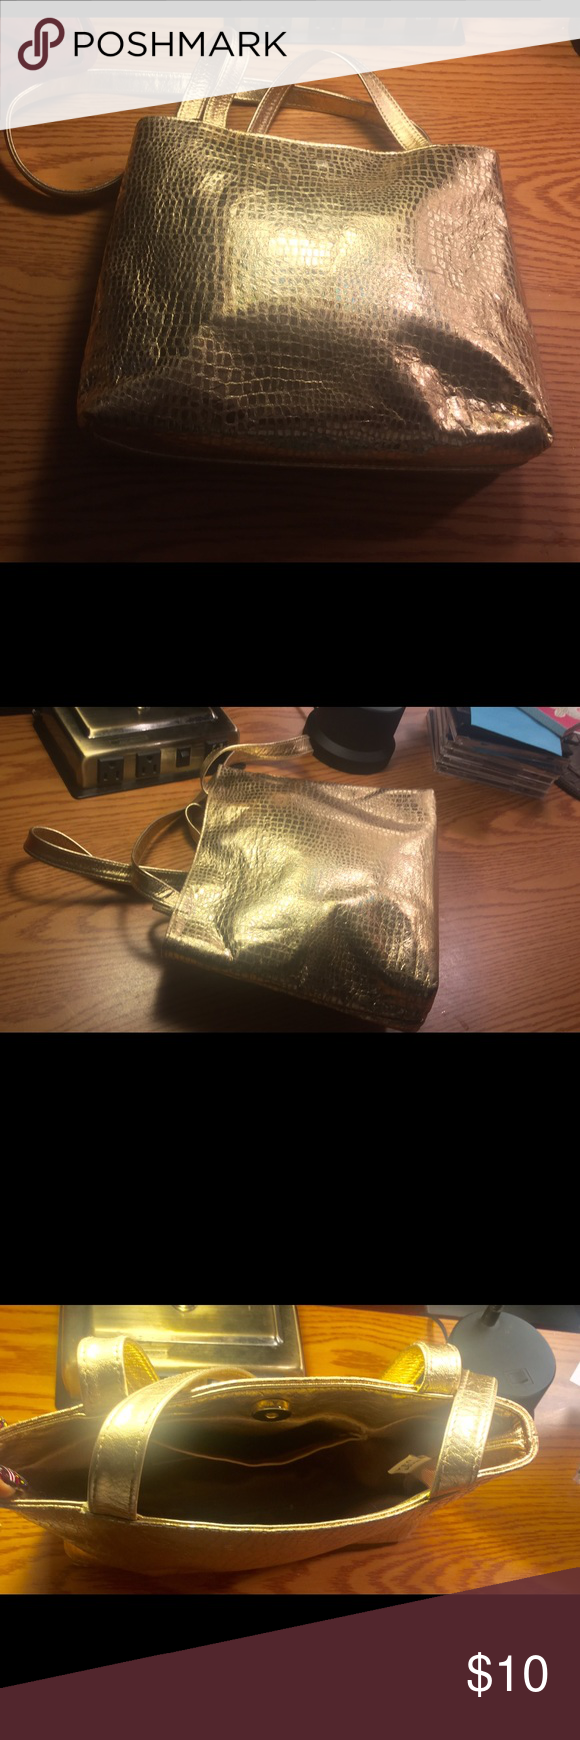 Gold Metallic Shoulder Bag Small Bags Shoulder Bags